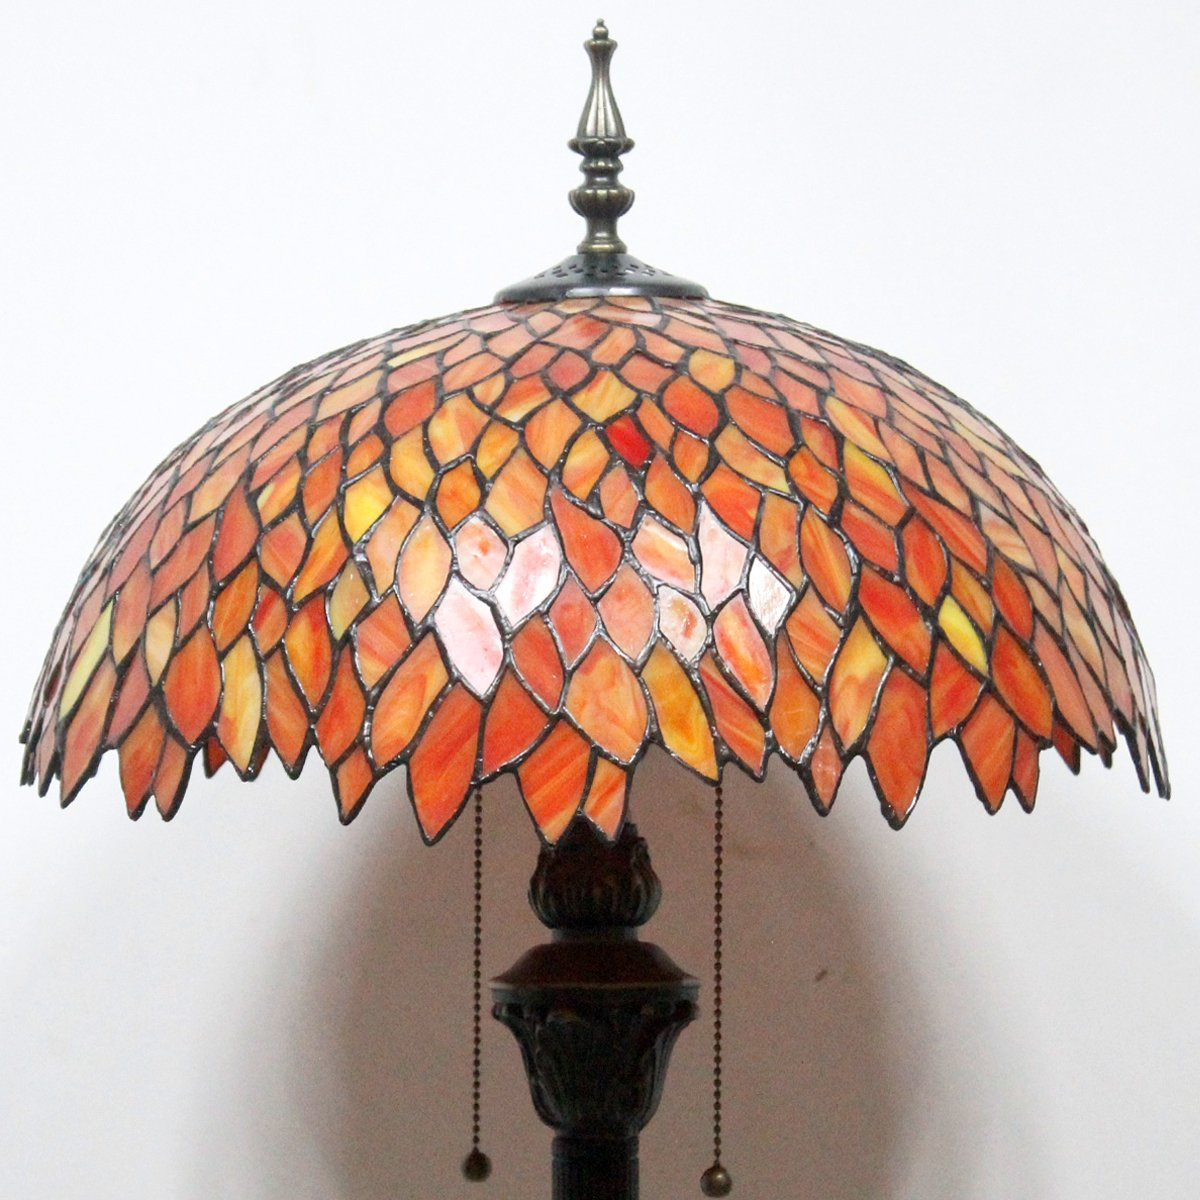 Red Wisteria Tiffany Style Floor Standing Lamp 64 Inch Tall Colorful Stained Glass Shade 2 Light Pull Chain